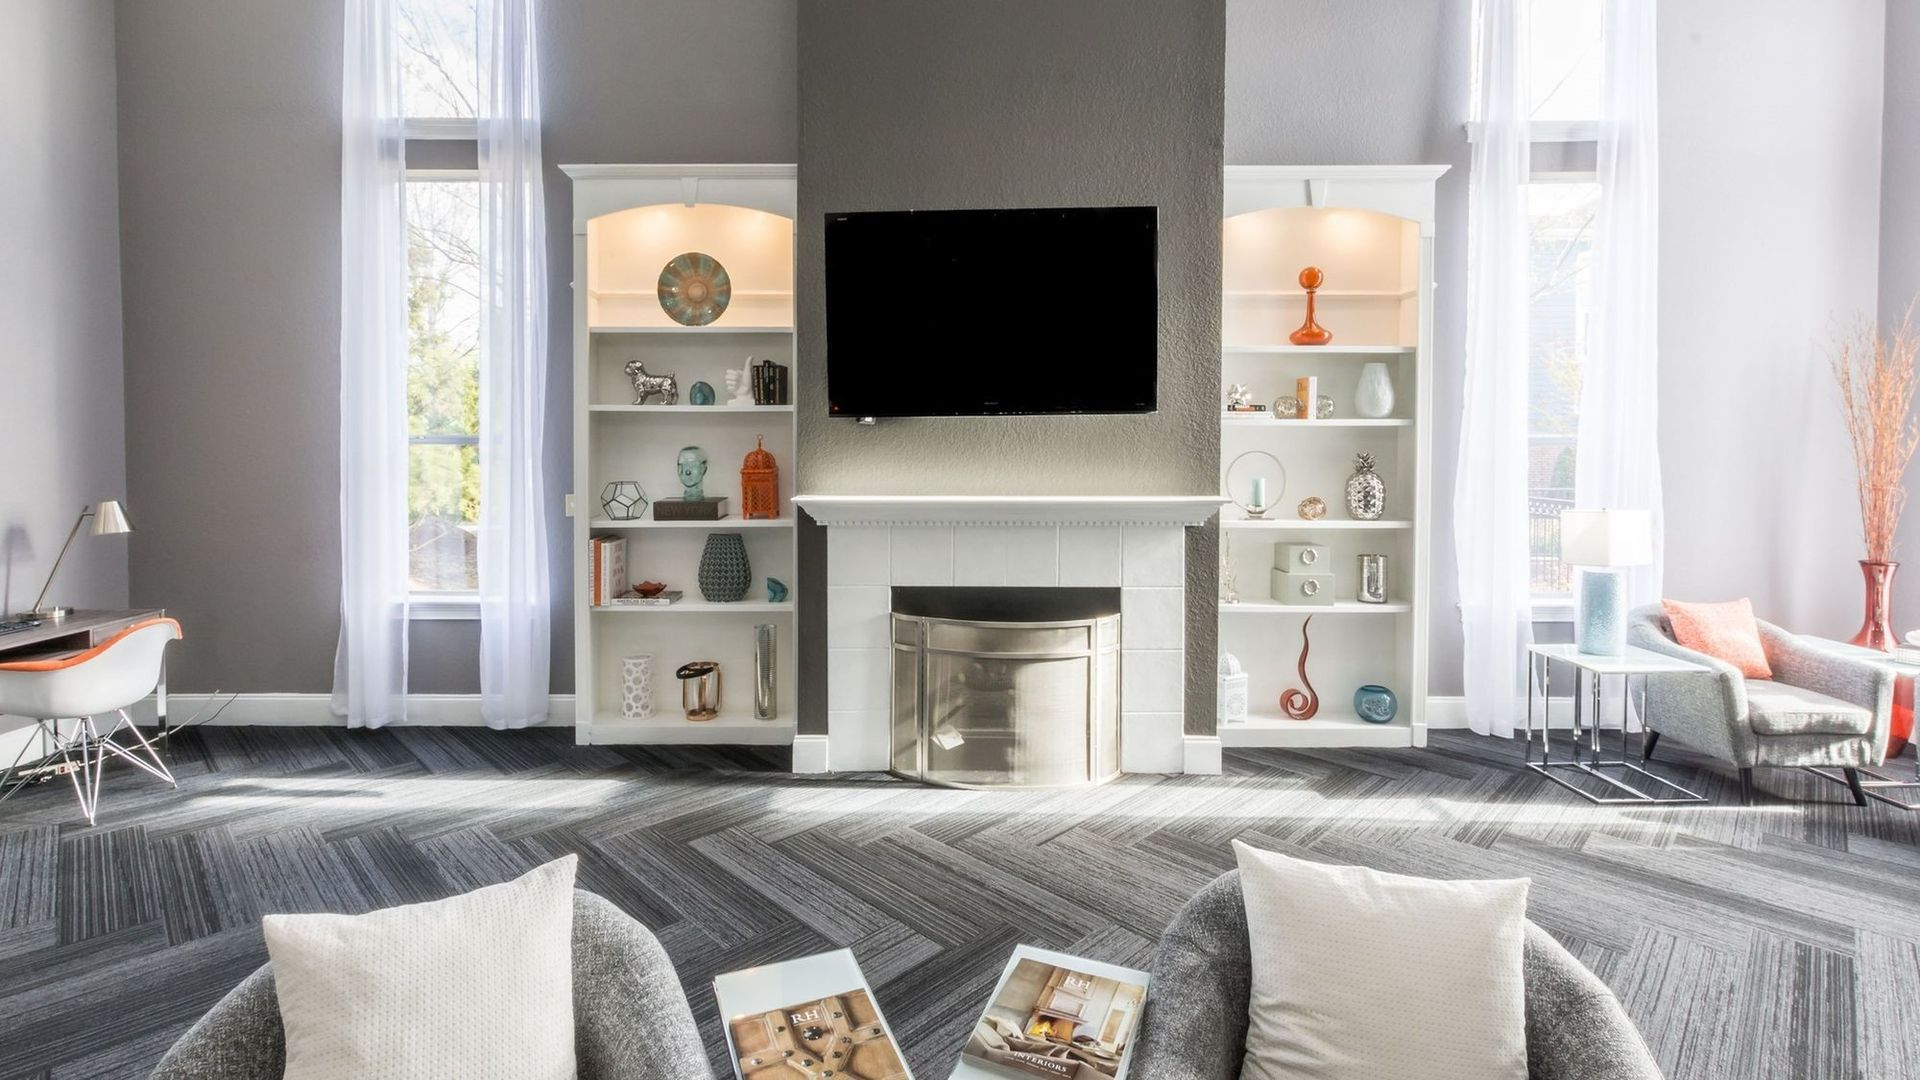 1 bed apartment at East Cabarrus Street, Raleigh, NC 27602 ...